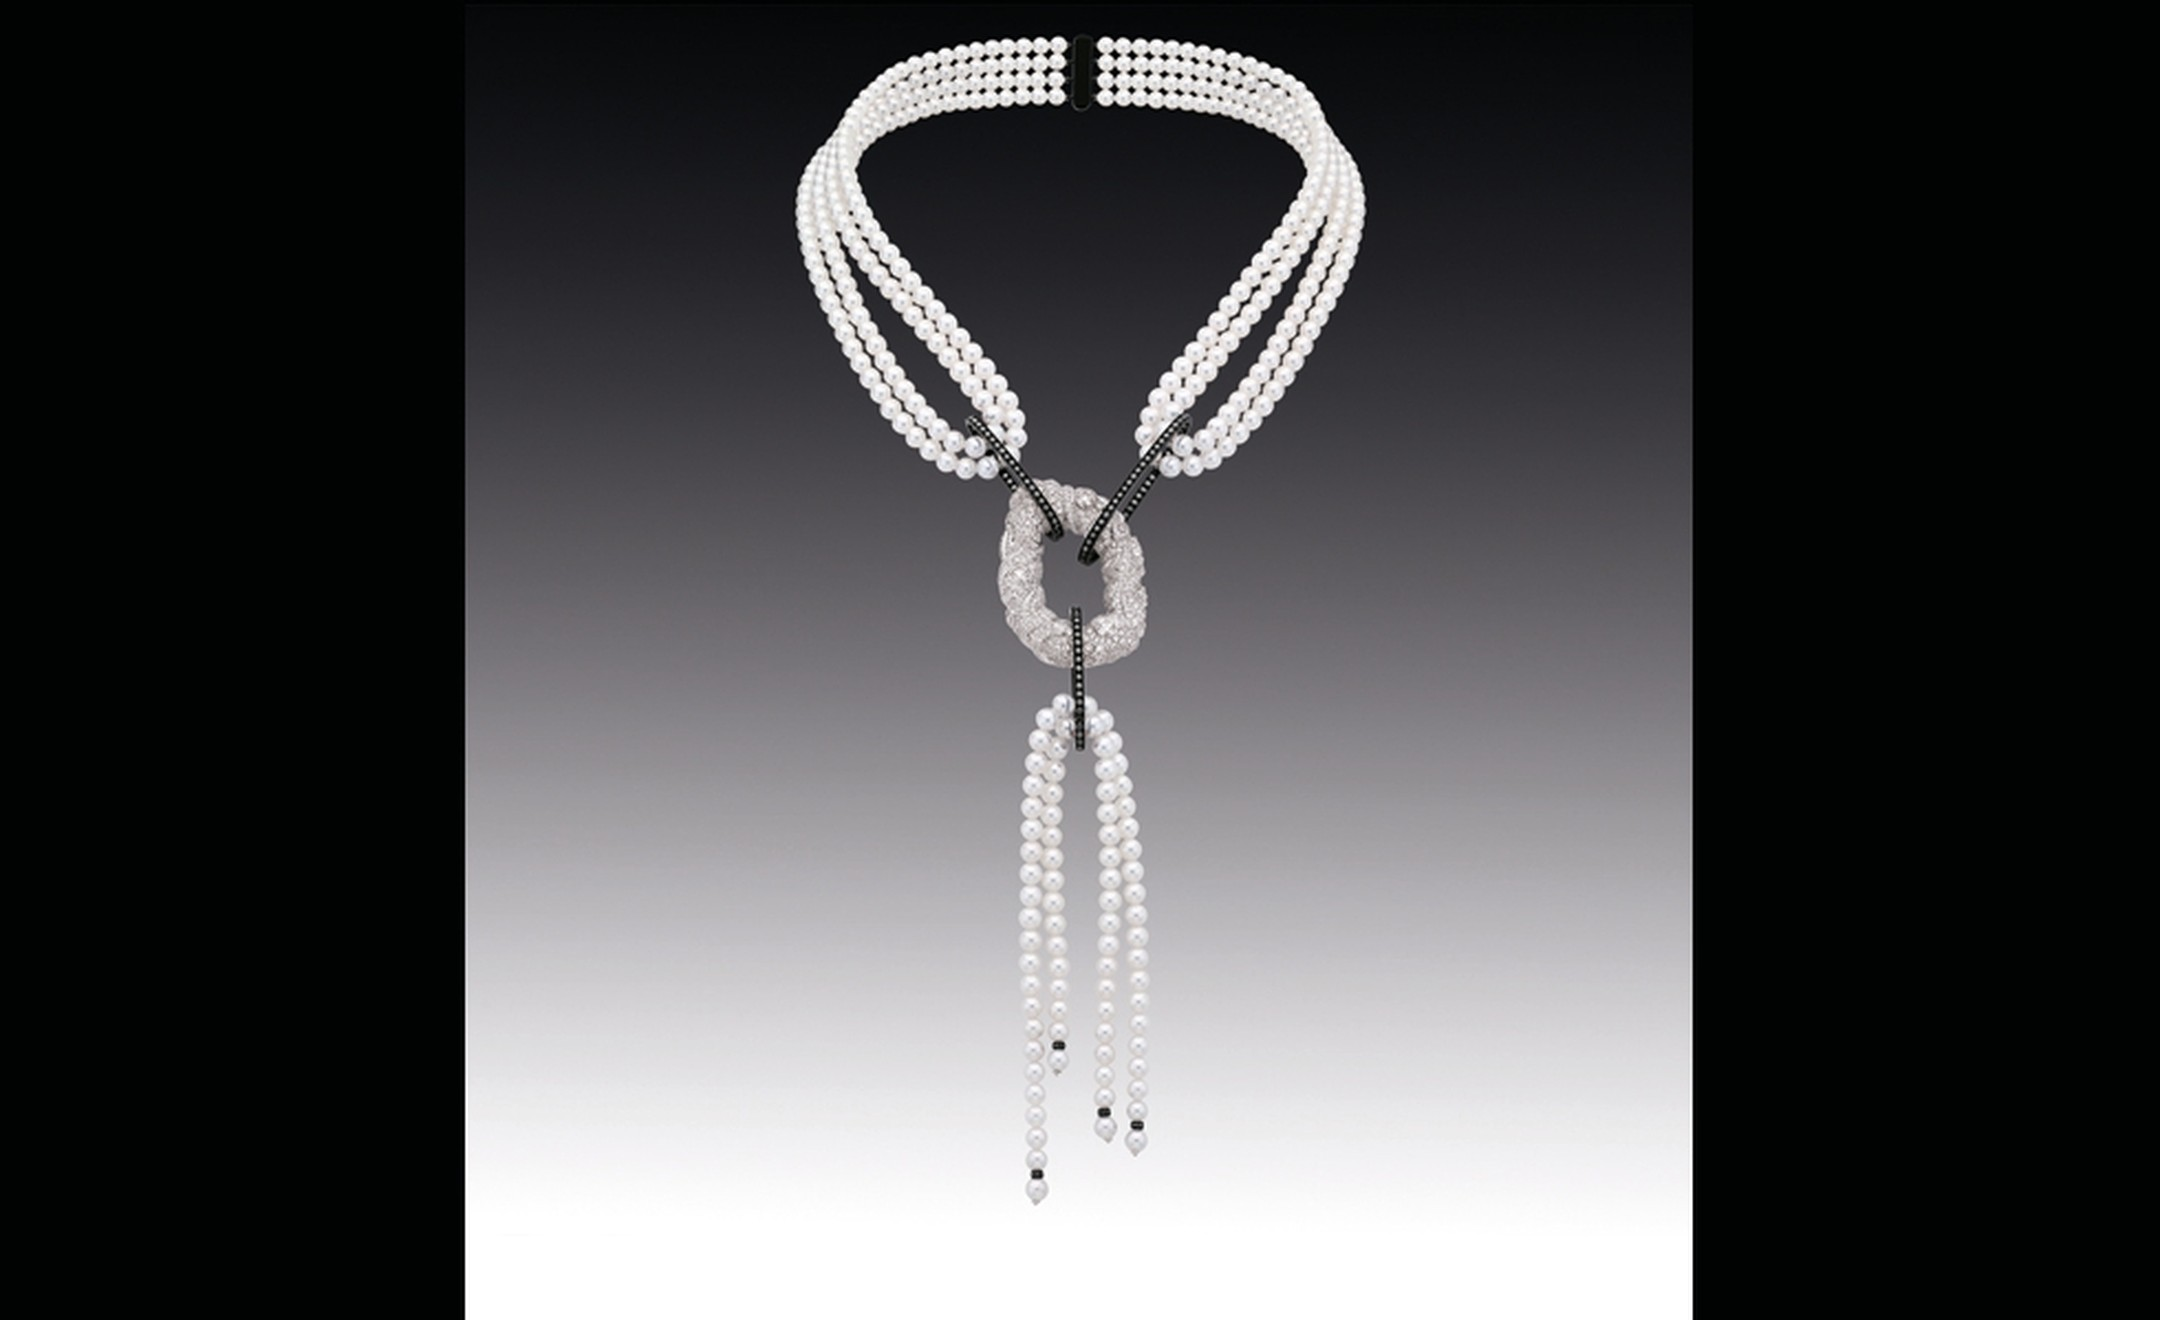 Chanel Contrastes collection: Collier Nuage de Glace. Necklace in white gold, diamonds and pearls.